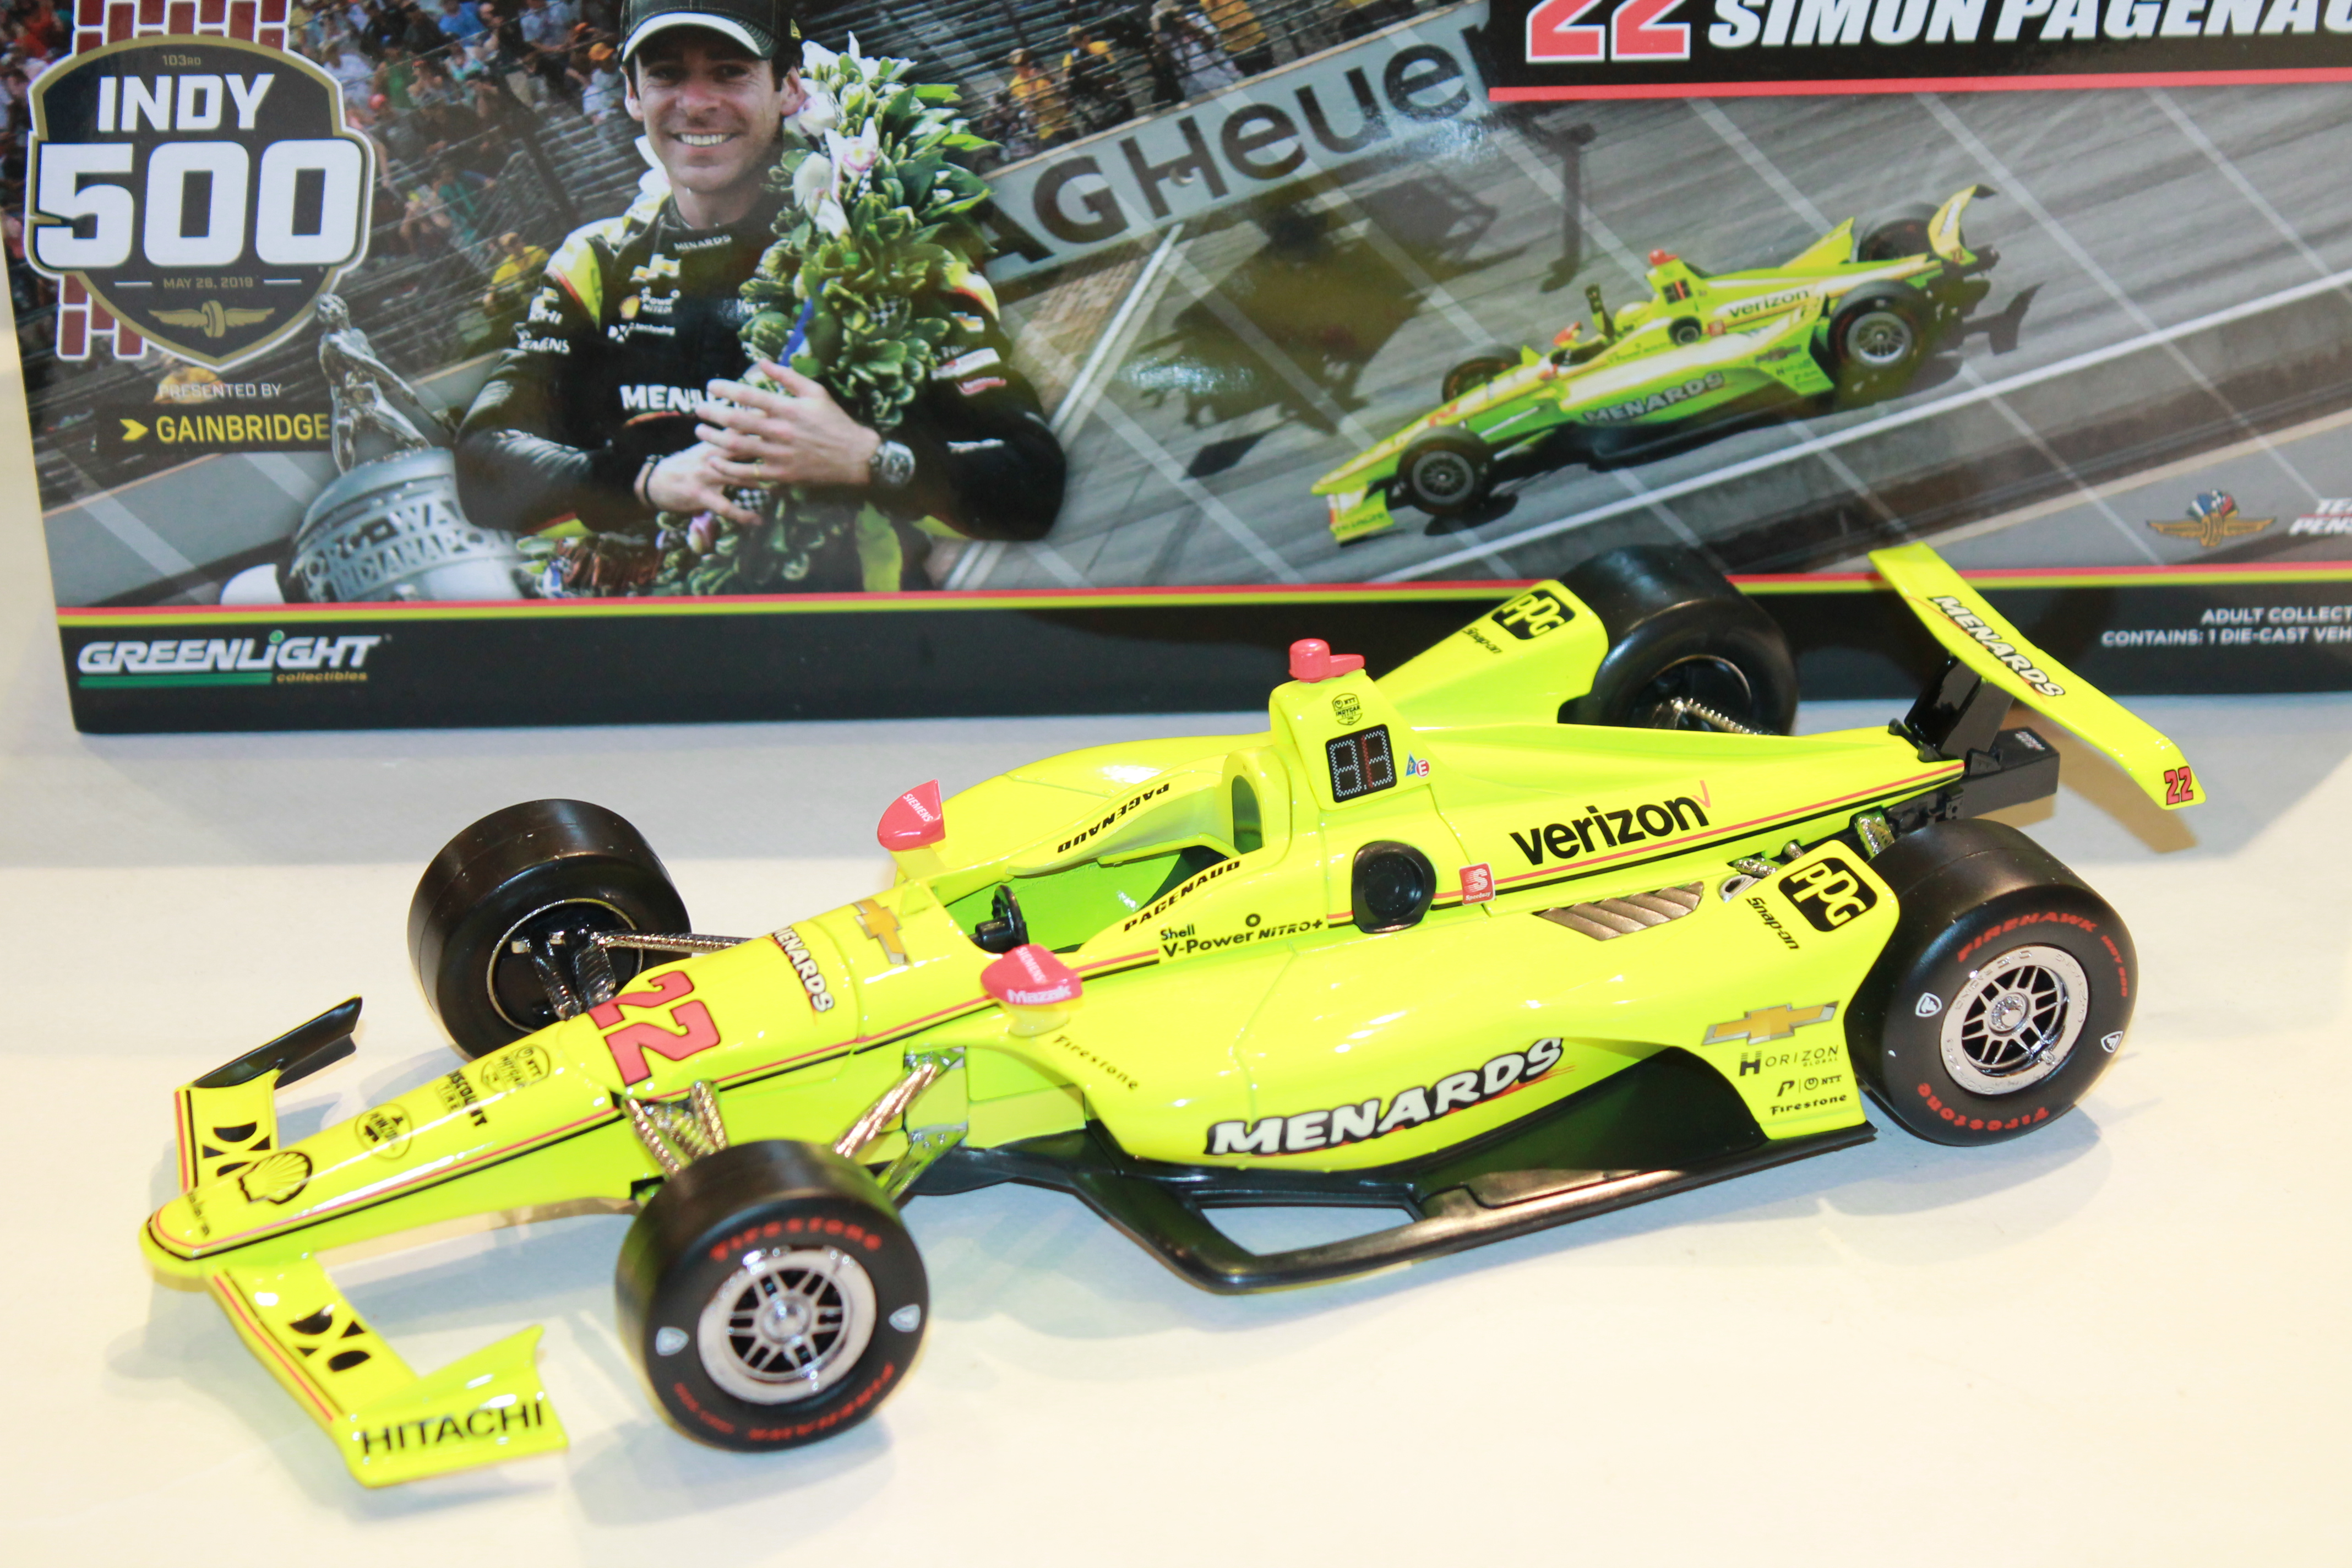 PENSKE N°22 PAENAUD VQ INDY 500 2019 GREENLIGHT 1/18°